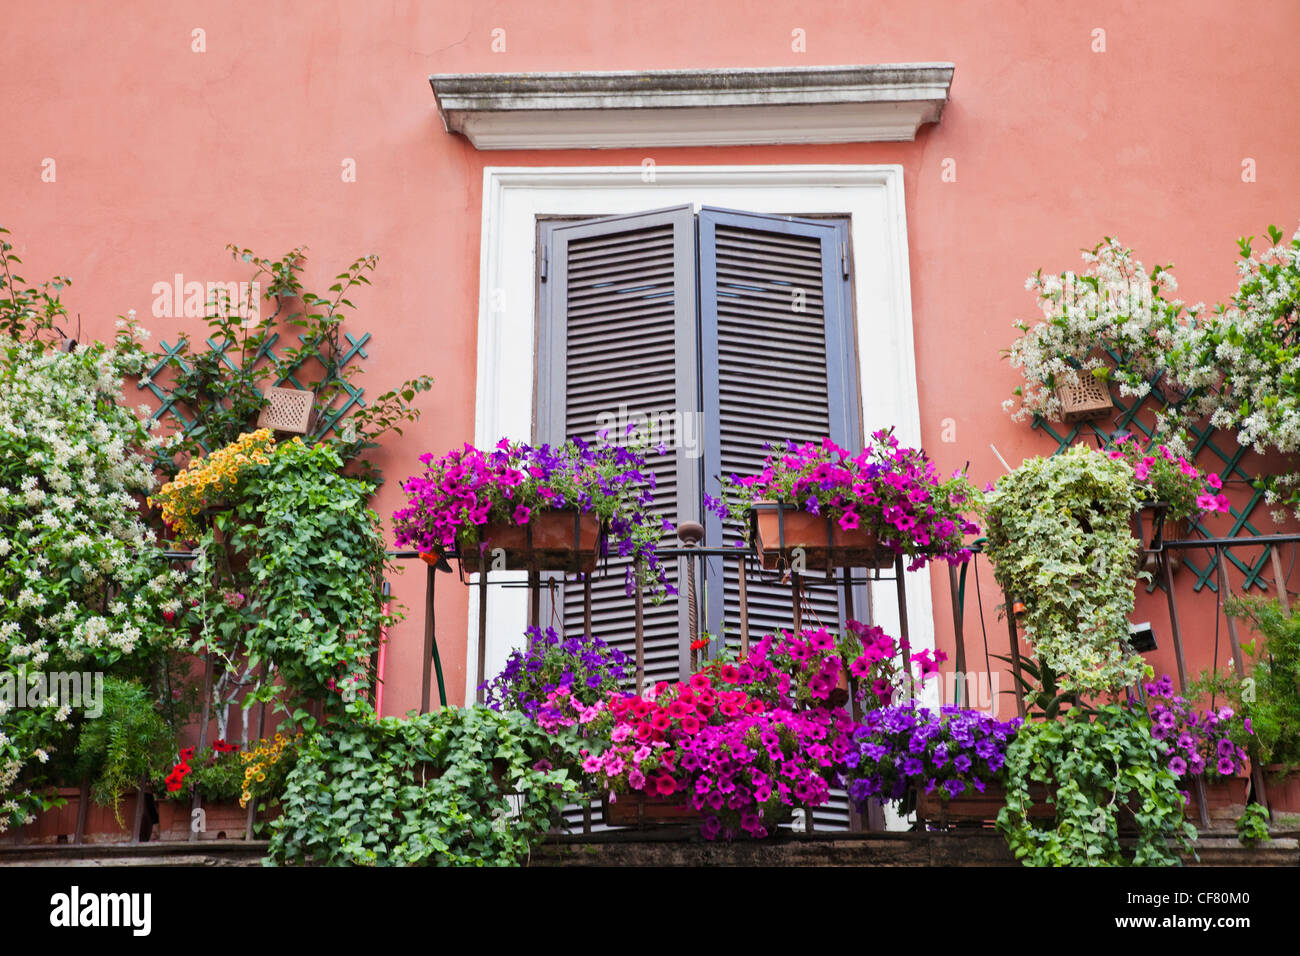 europe, italy, rome, apartment, flats, housing, balcony, flowers